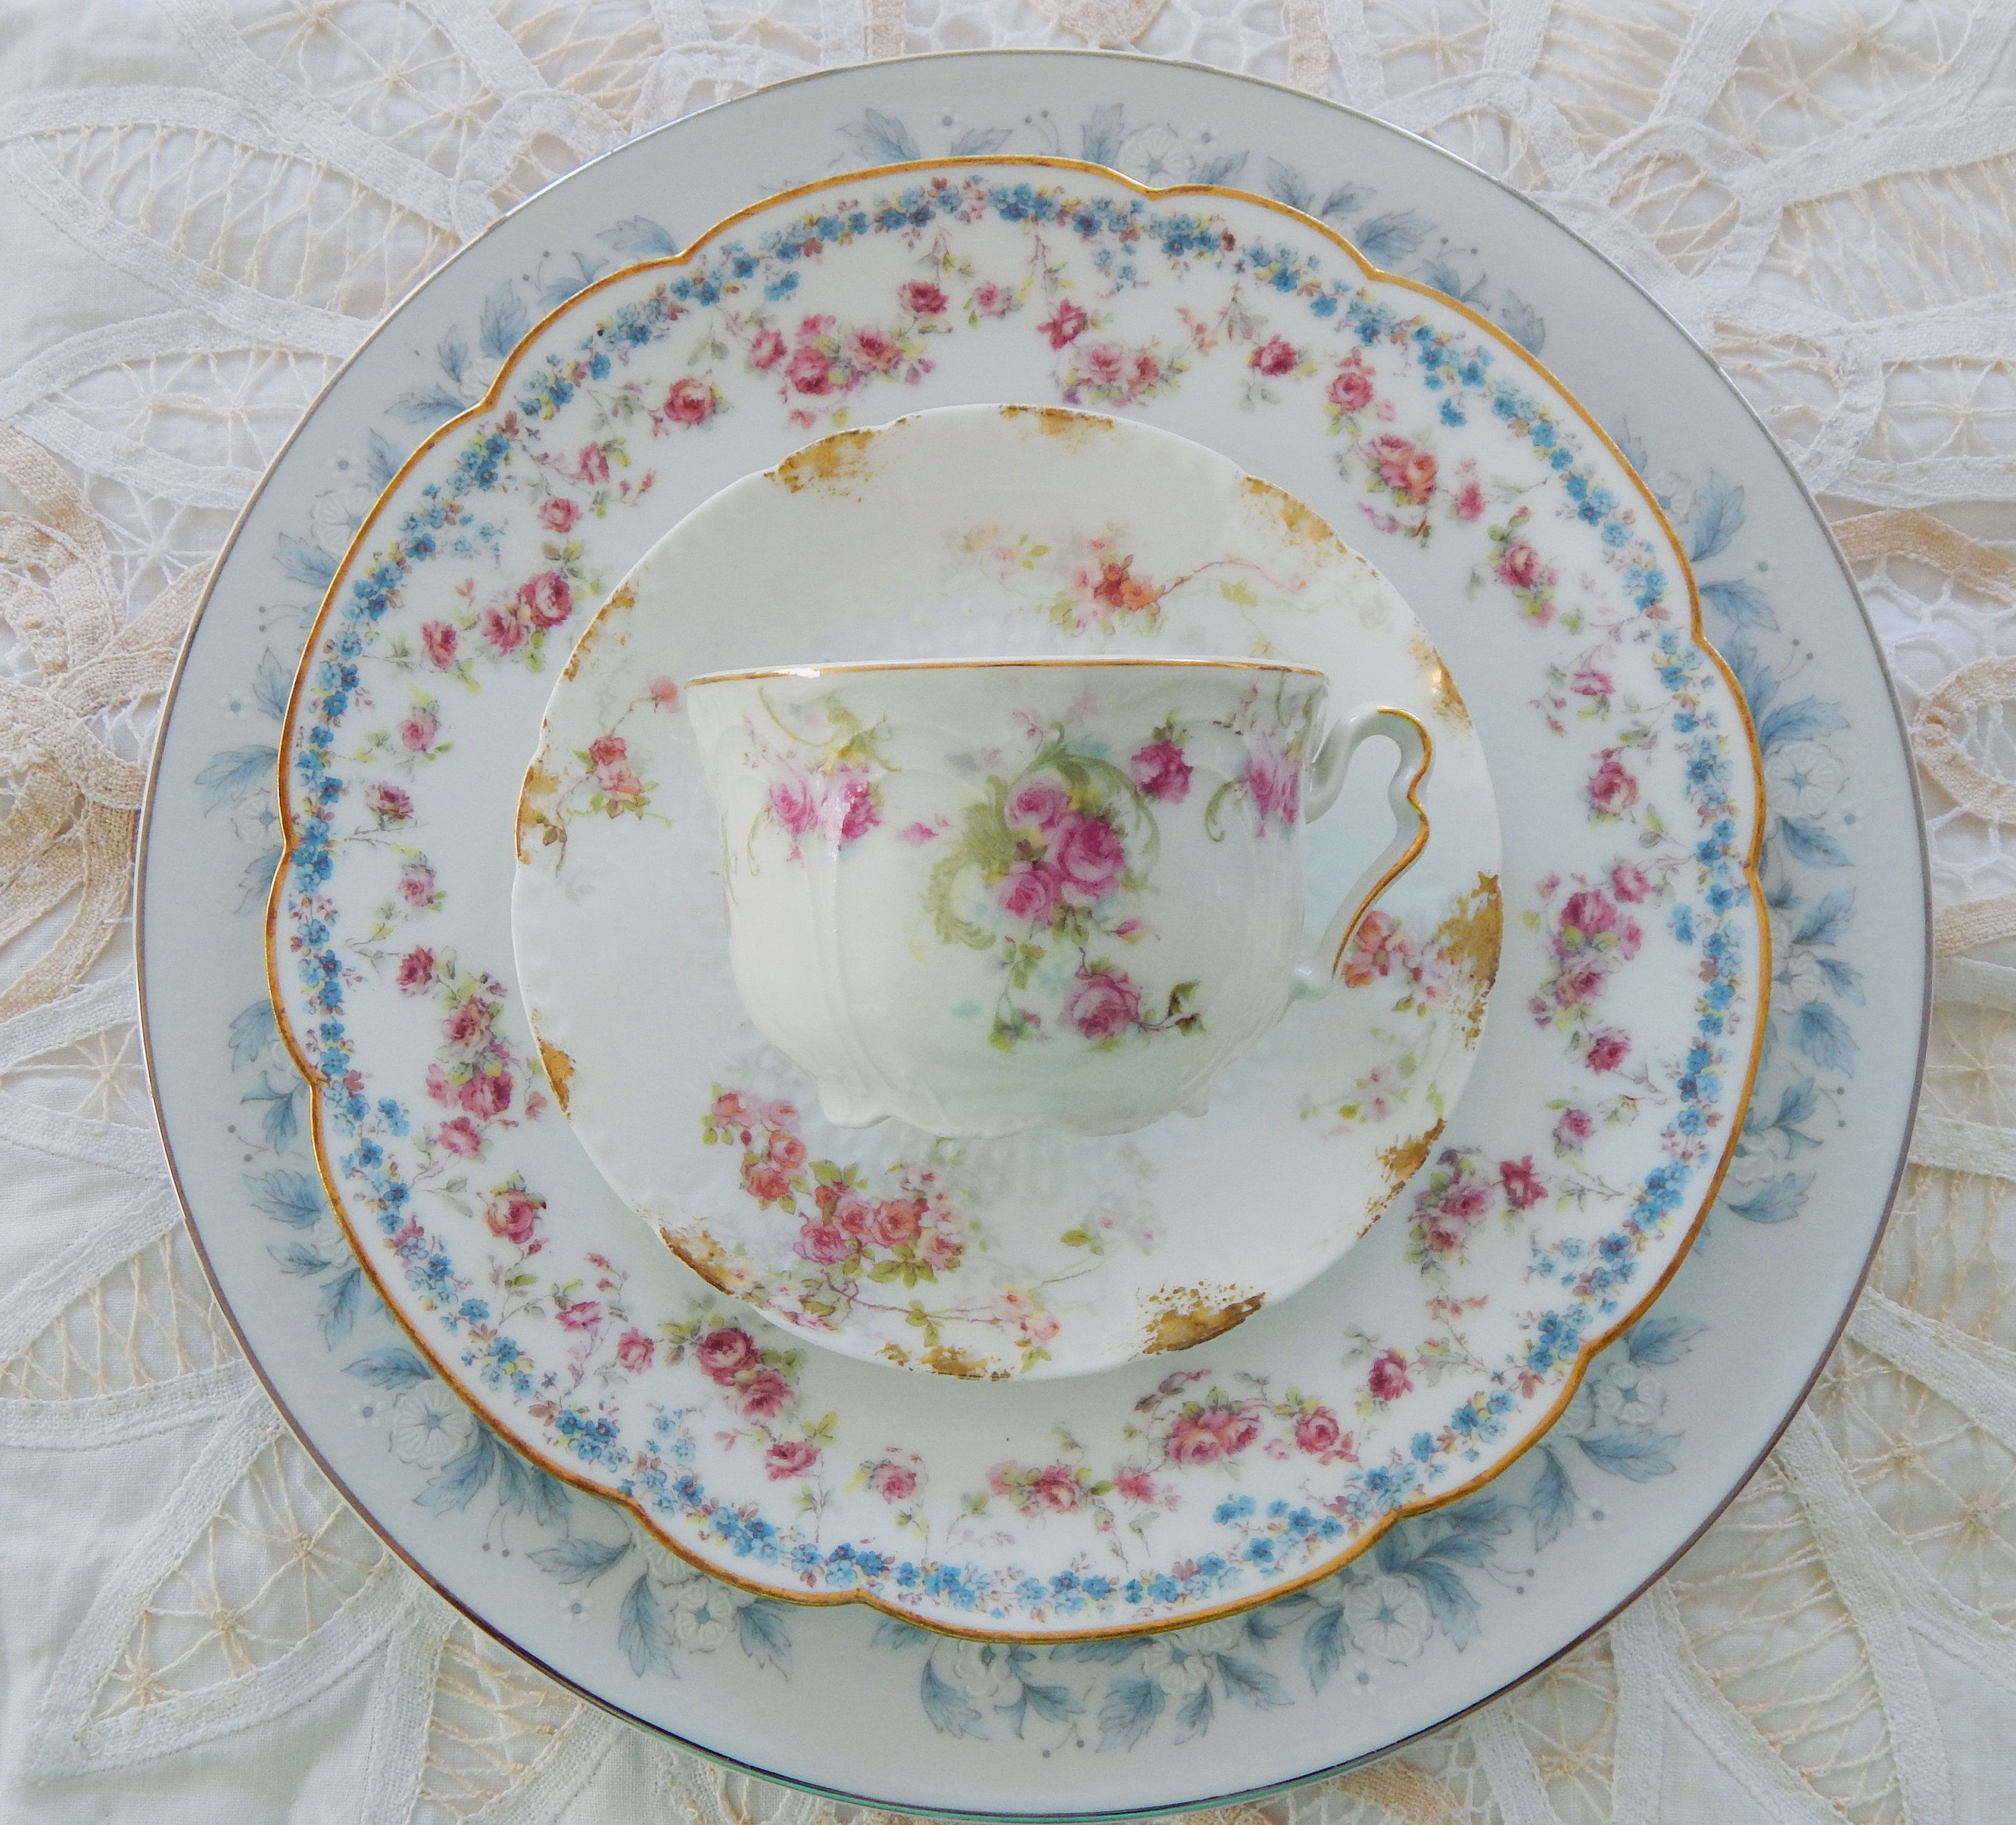 Vintage China Plates Tea Cups And Saucer Mismatched Dinnerware 4